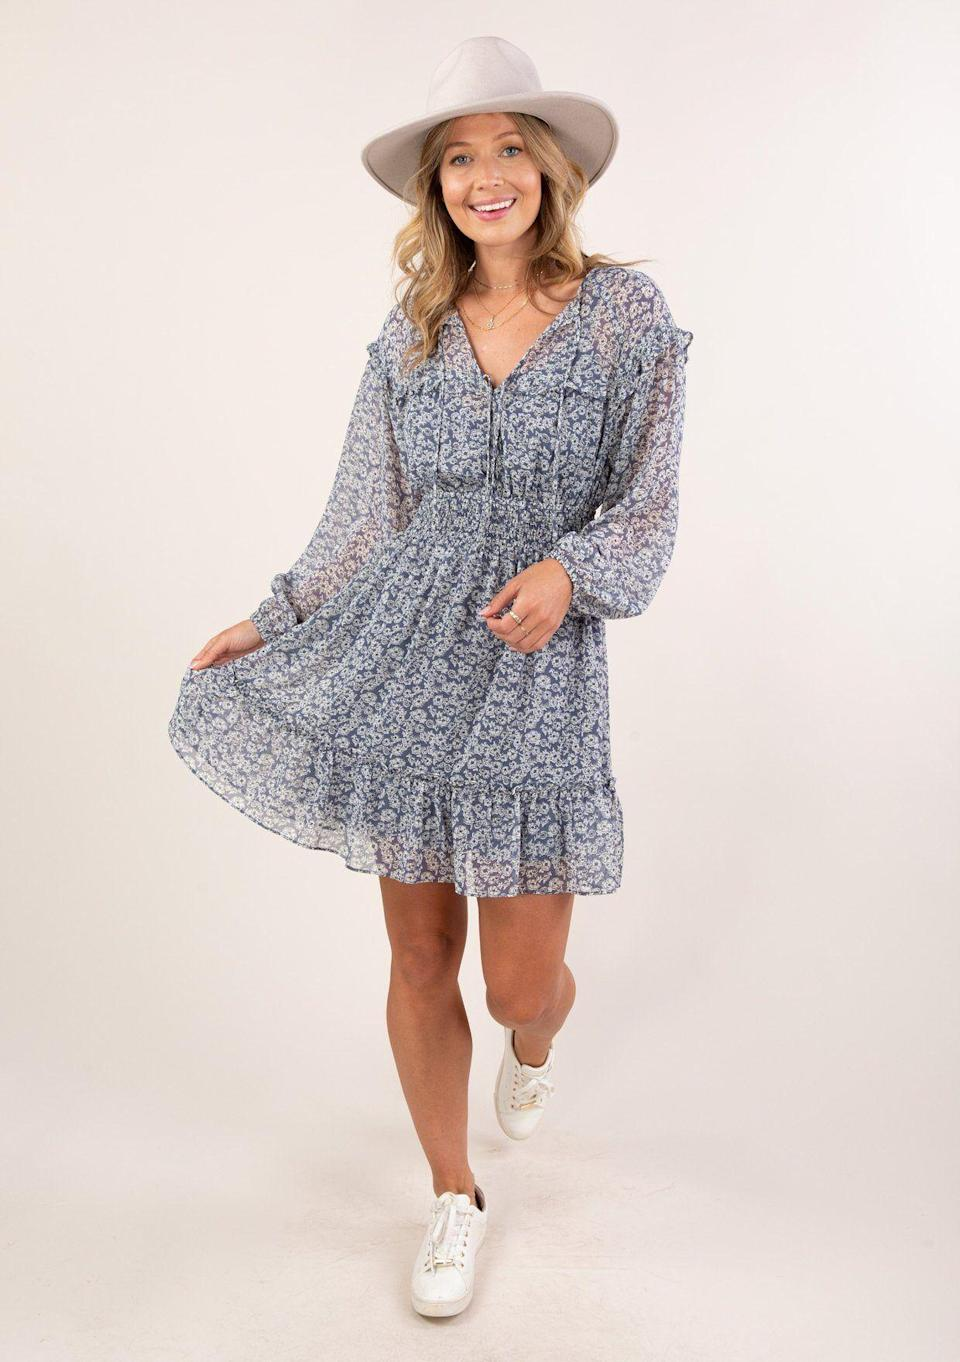 """<p><strong>Love Stitch</strong></p><p>shoplovestitch.com</p><p><strong>$64.00</strong></p><p><a href=""""https://www.shoplovestitch.com/products/flirty-floral-sheer-mini-dress?_pos=54&_sid=ec6fbe8cd&_ss=r&variant=32316401909838"""" rel=""""nofollow noopener"""" target=""""_blank"""" data-ylk=""""slk:Shop Now"""" class=""""link rapid-noclick-resp"""">Shop Now</a></p><p>Whenever I hear the words """"60 percent off,"""" my jaw automatically drops. And it's especially hard to pick it up because the clothes at Love Stitch are already super affordable. If you're drooling too, make sure you <strong>use the code KLARNAHAULIDAY</strong> on August 8 and 9.</p>"""